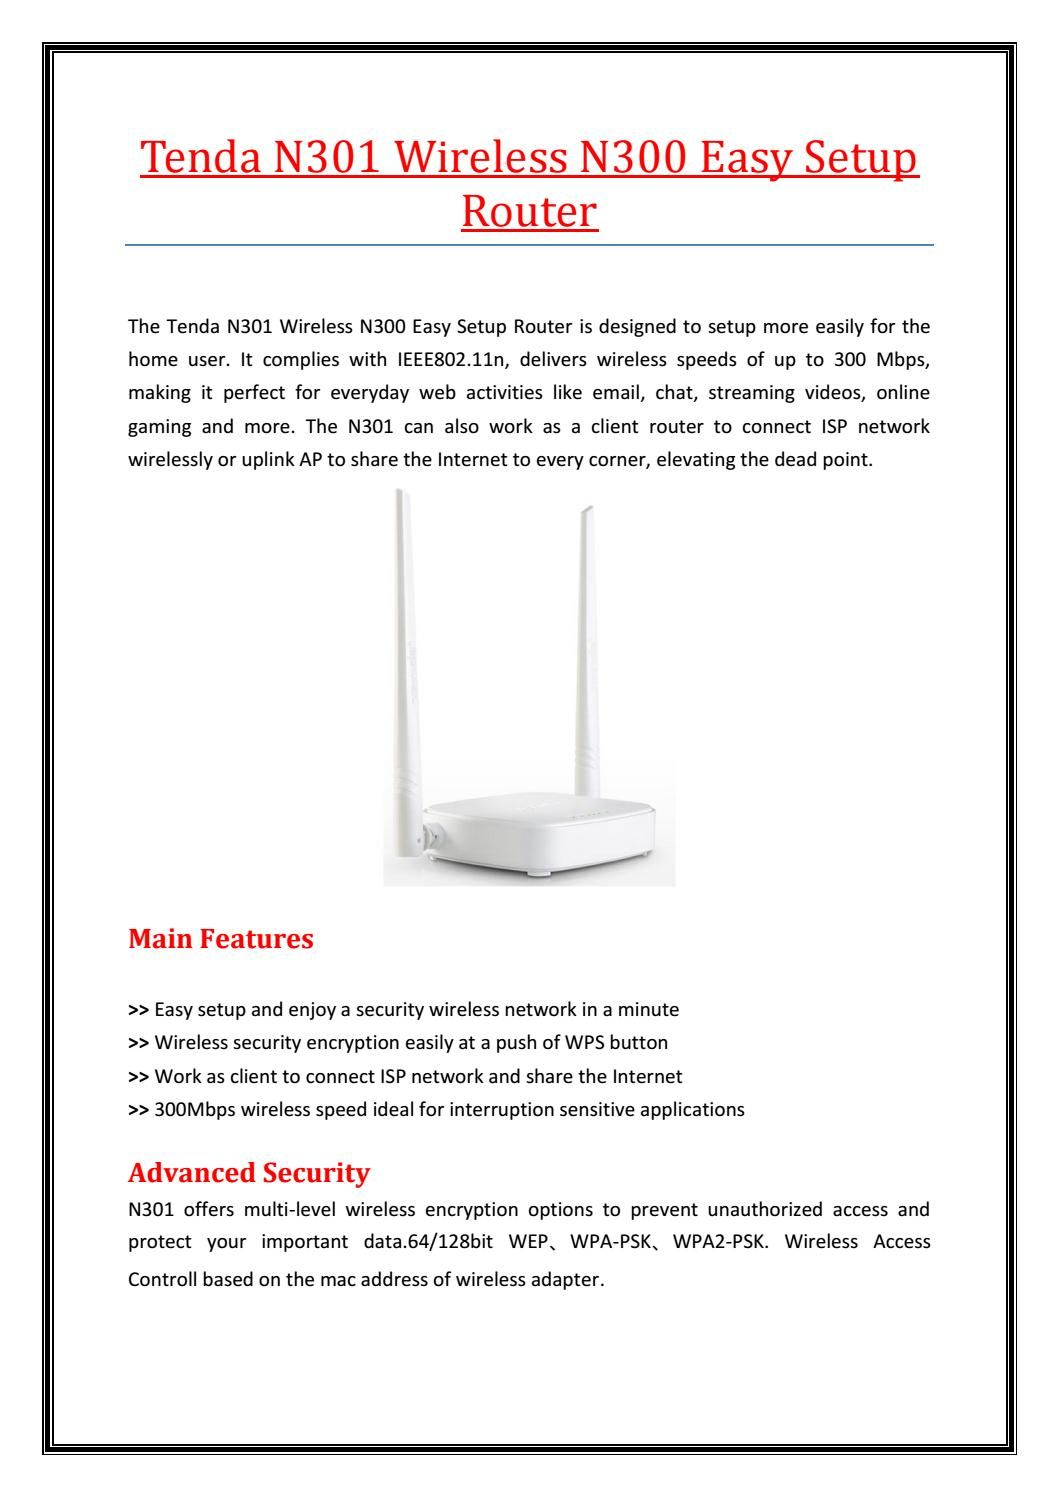 Tenda N301 Wireless Router Wireless Router